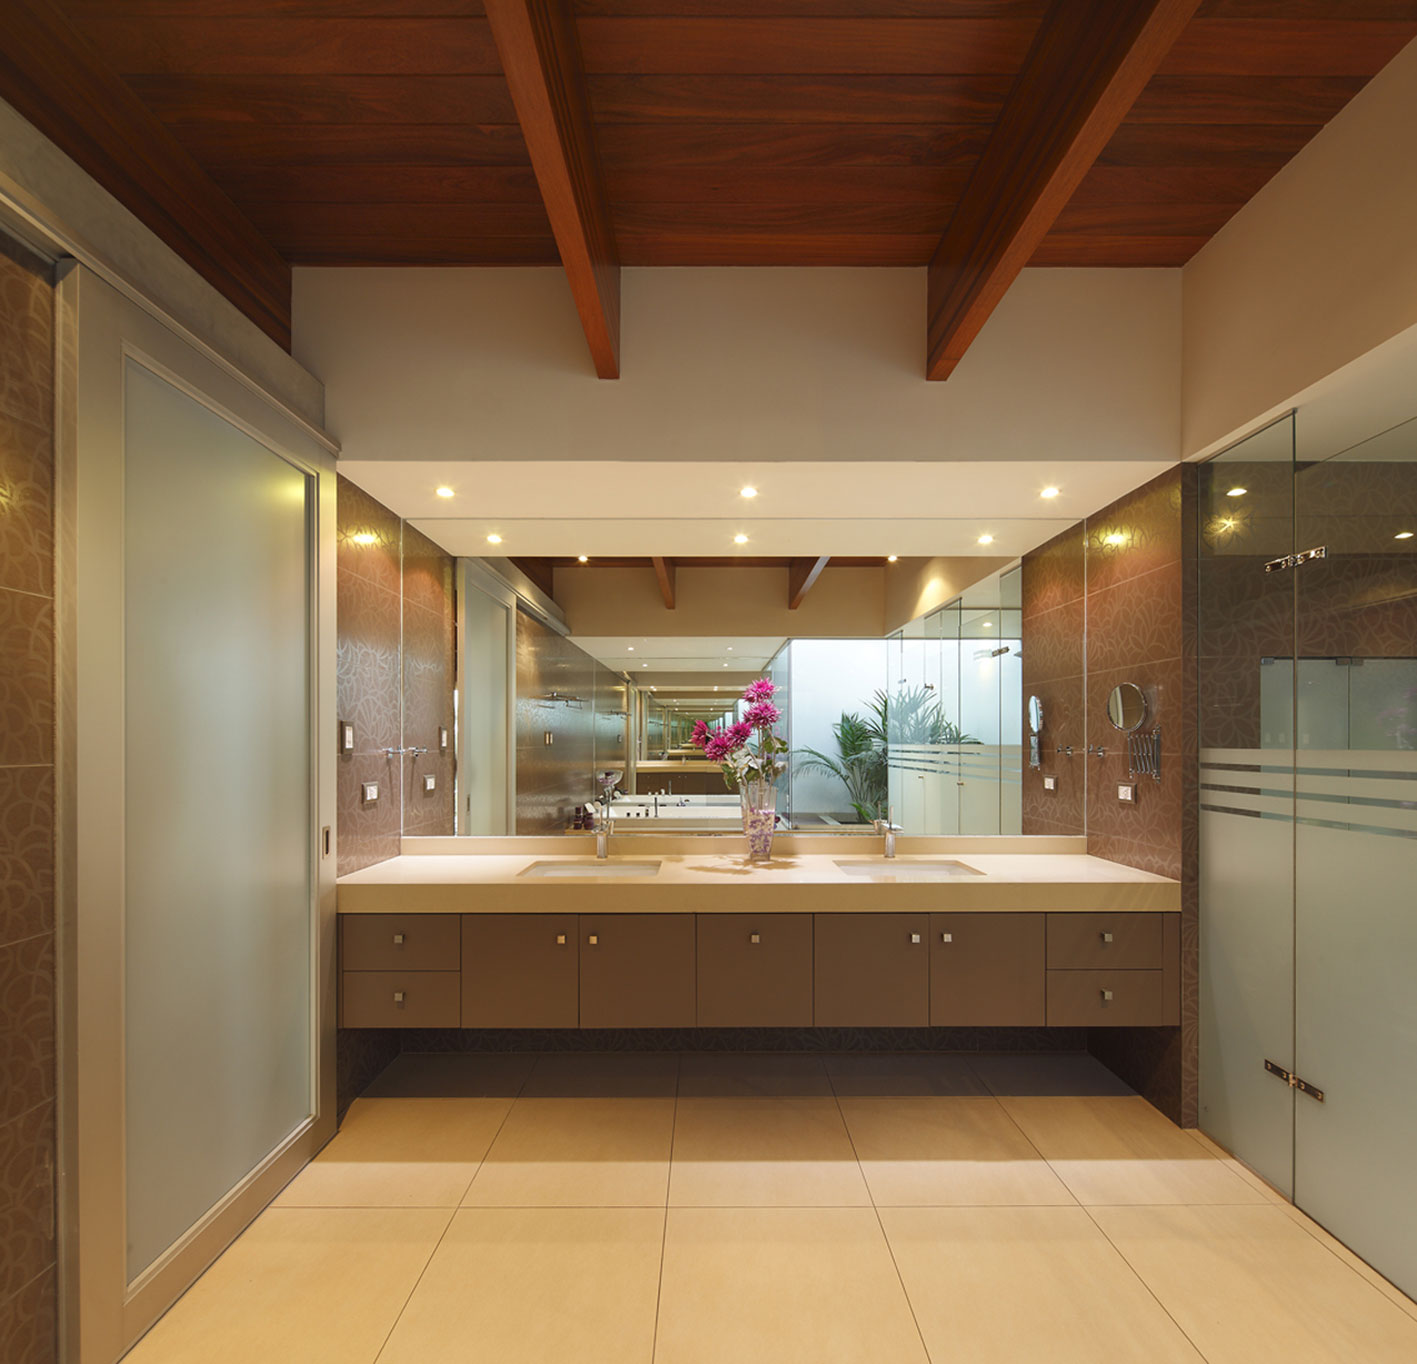 Bathroom, Double Sinks, Glass Shower Door, Imposing Family Home in Lima, Peru